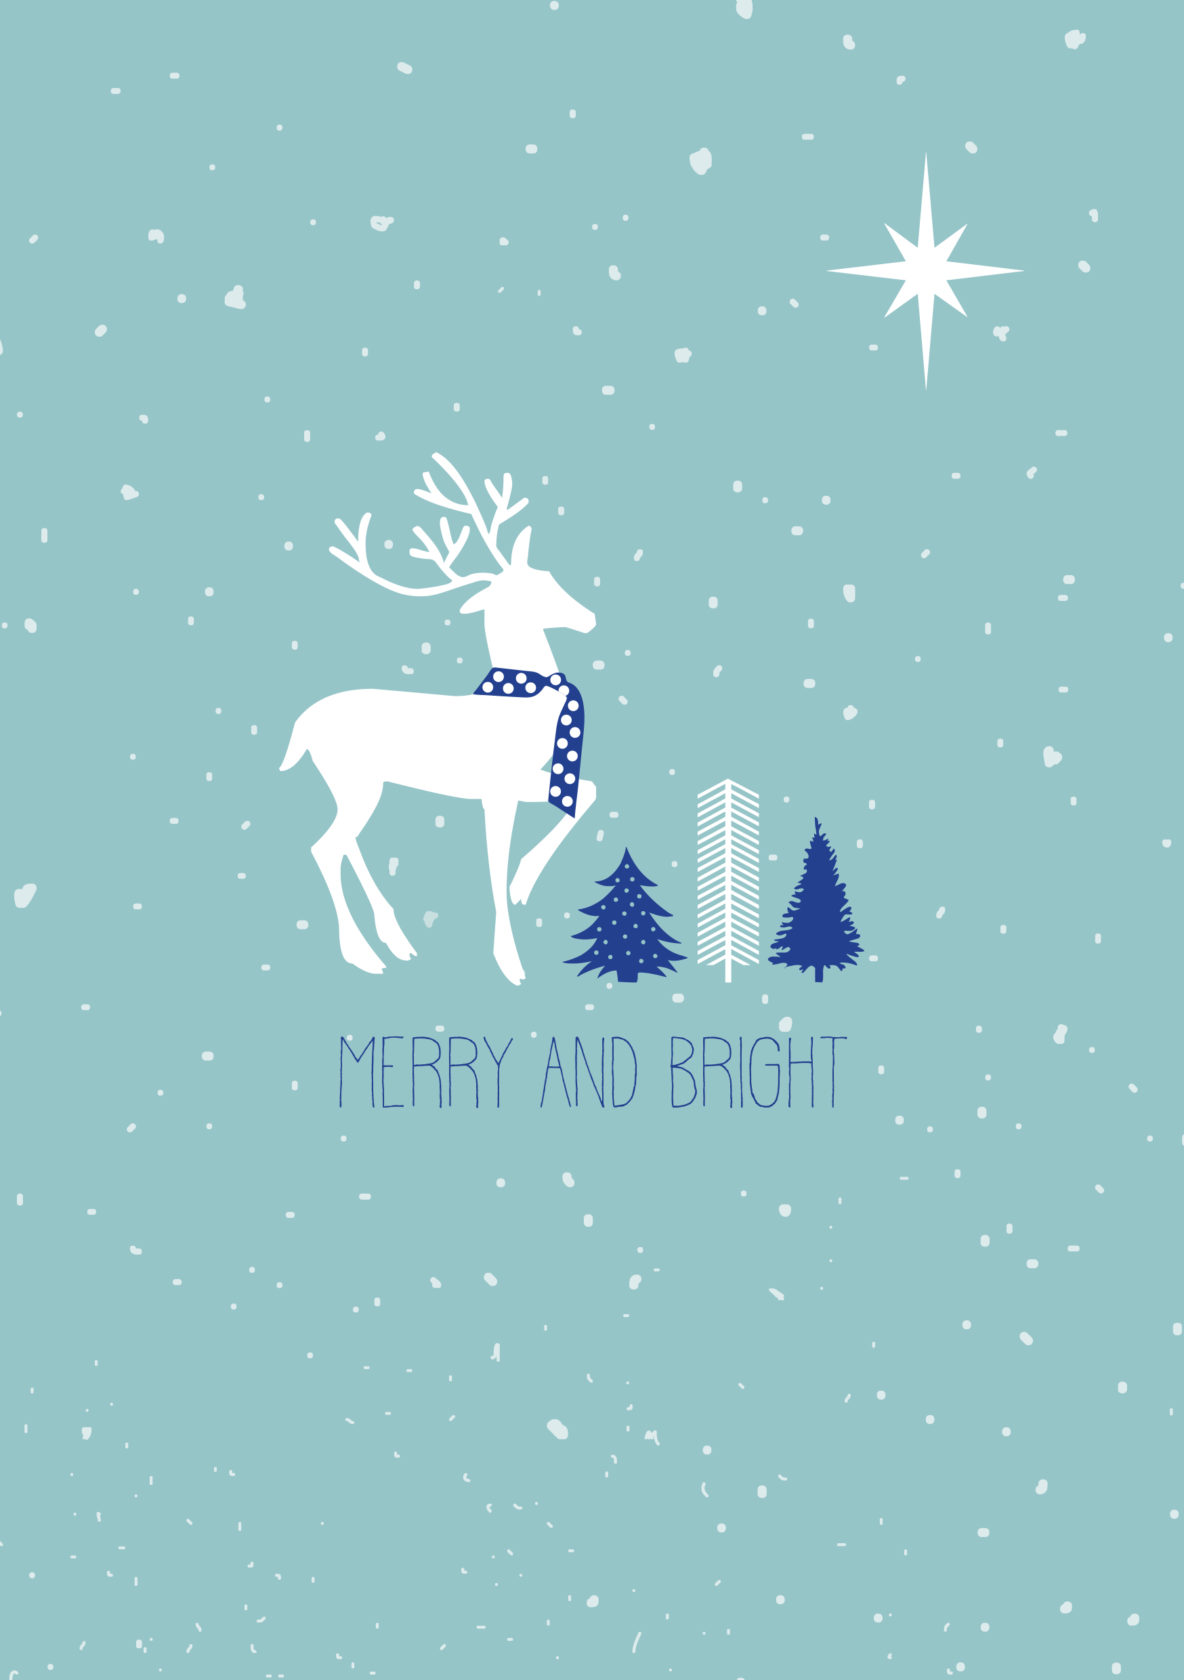 christmas cards now available to buy - Where To Buy Christmas Cards